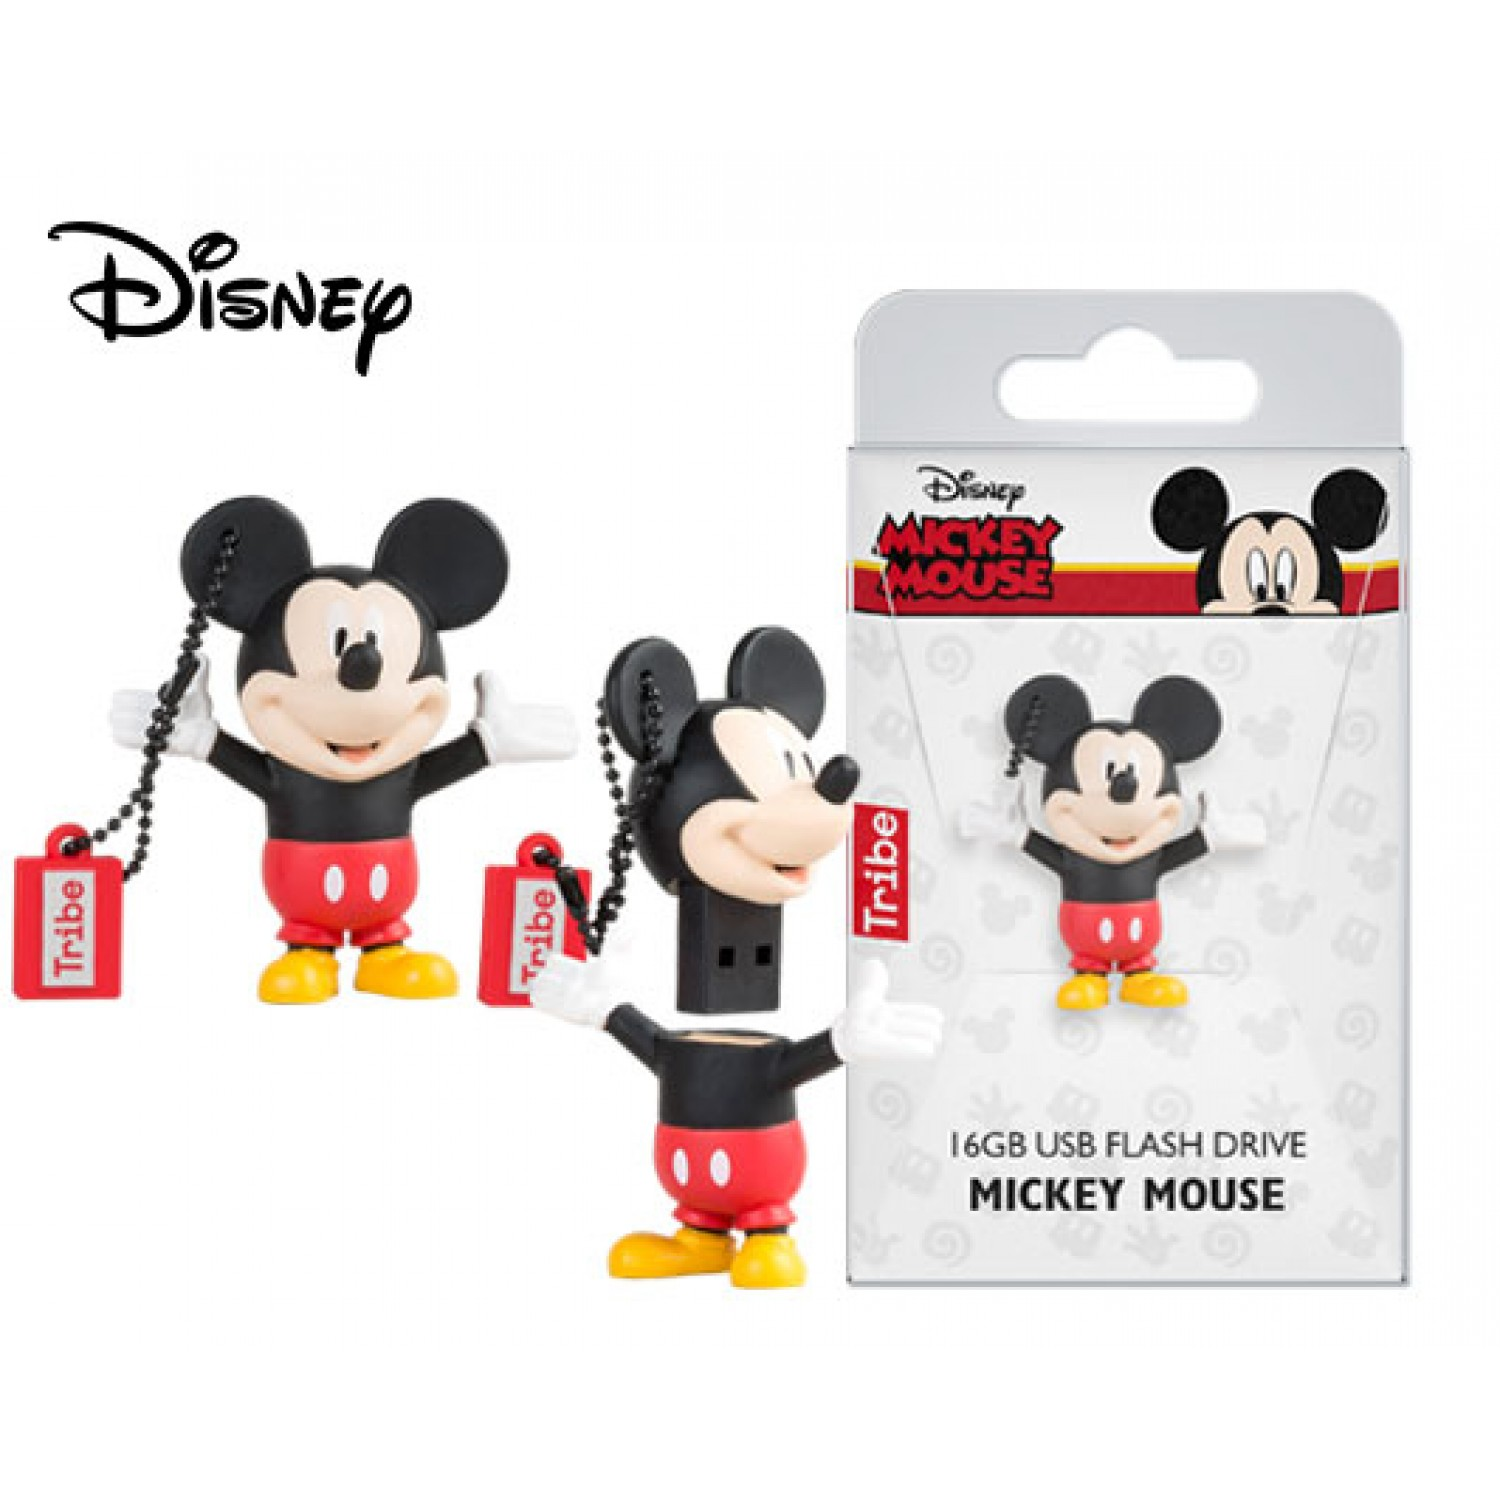 TRIBE FLASH DRIVE USB 3D DISNEY CLASSIC MICKEY MOUSE 16GB